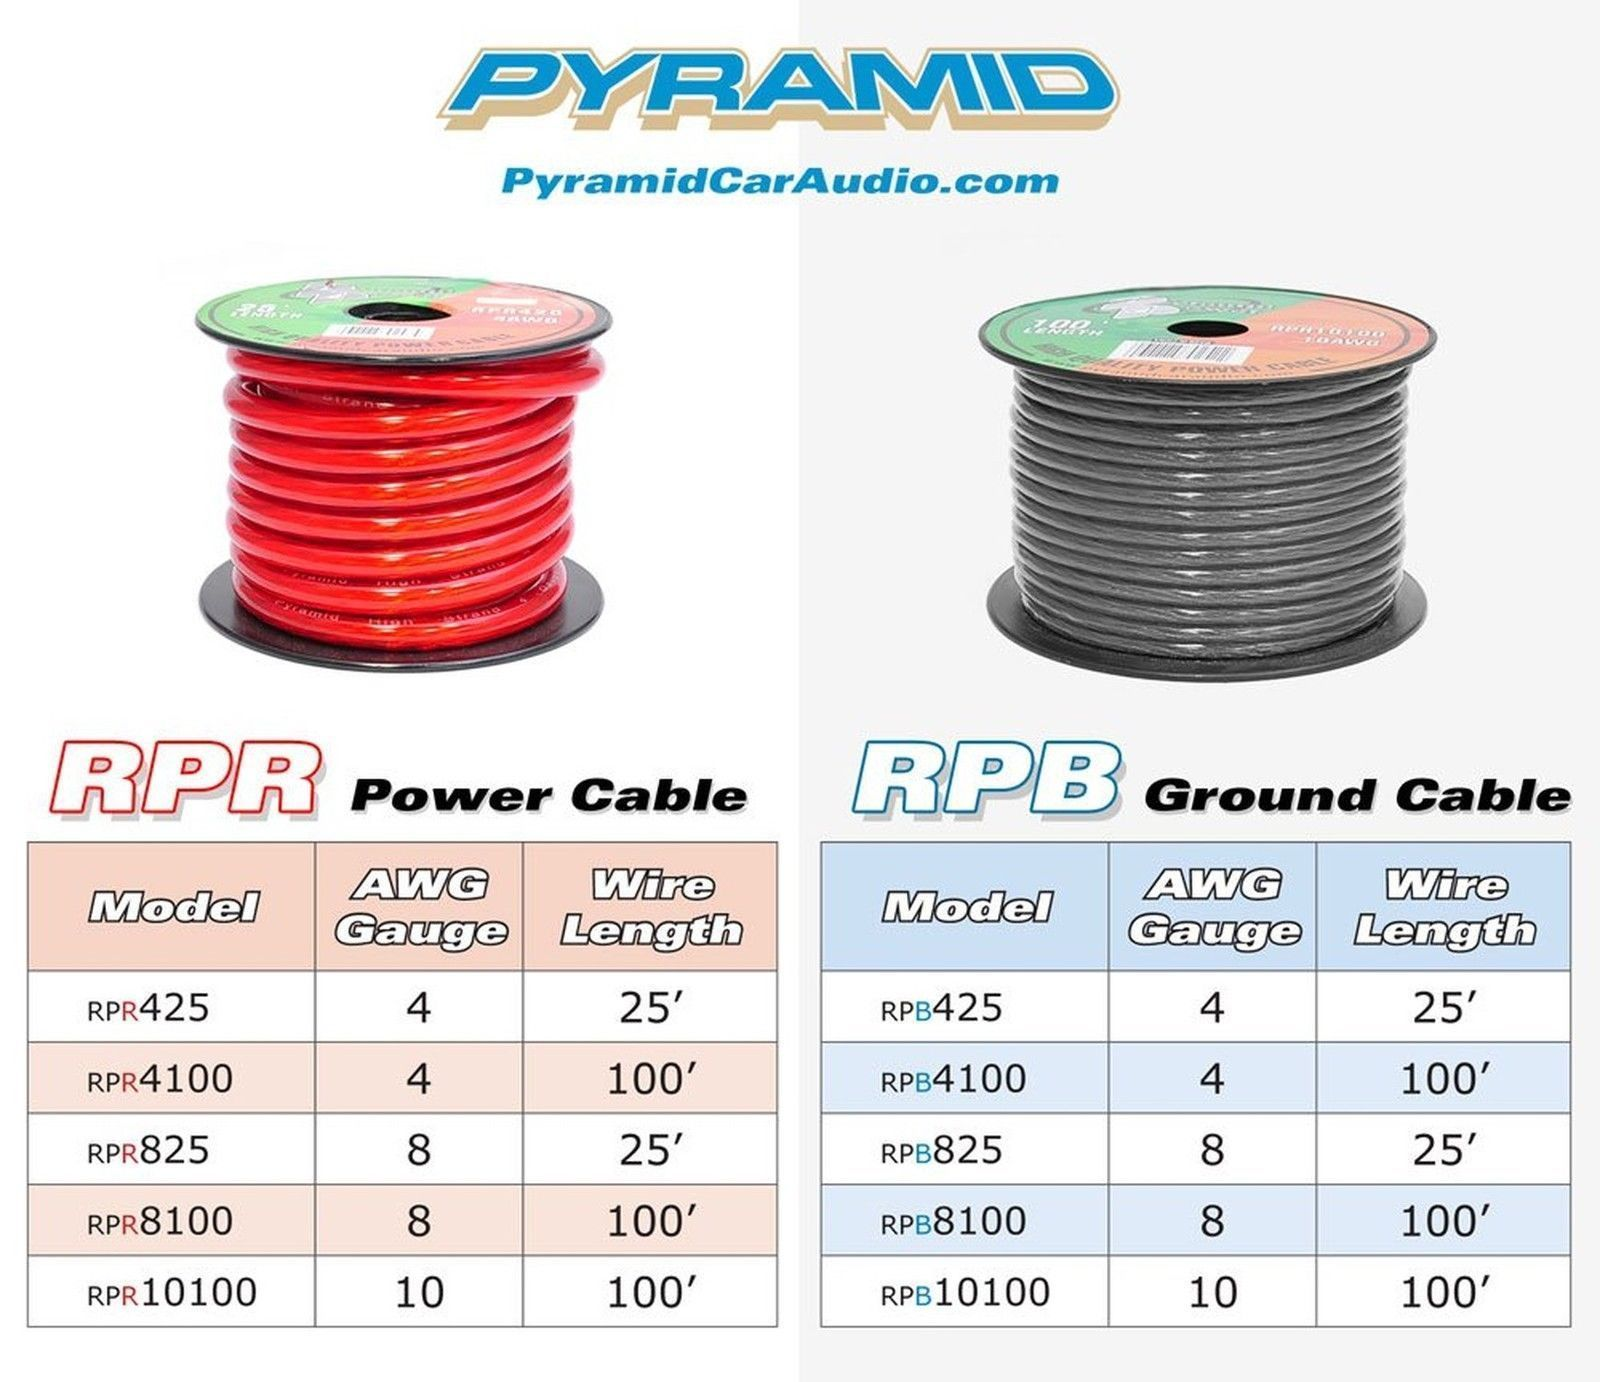 Pyramid RPB425 Ground Wire 4-Gauge 25 Feet and similar items